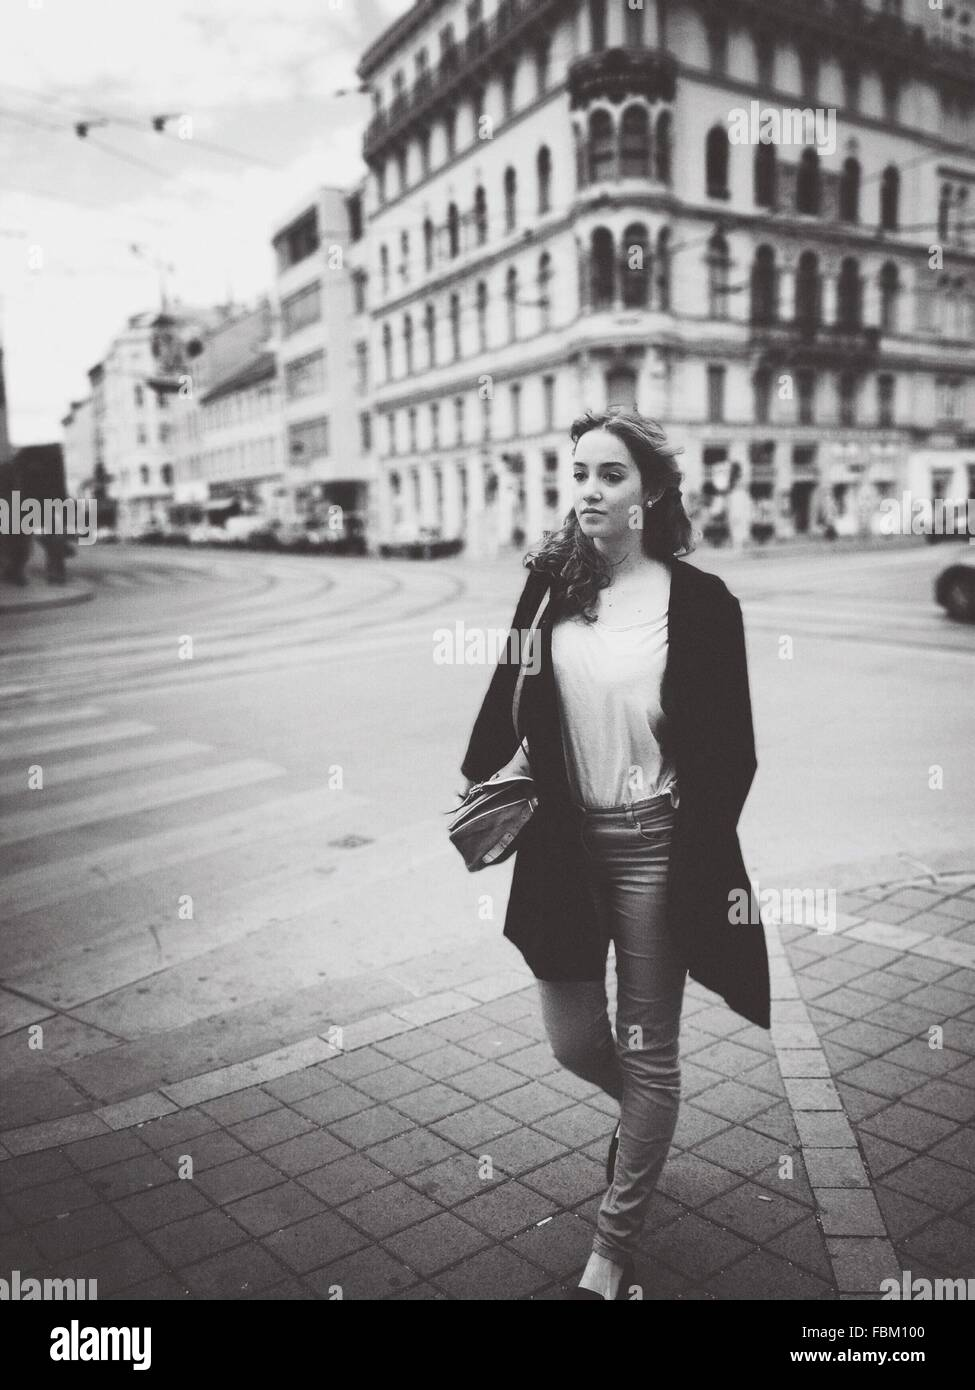 Full Length Of Young Woman Walking On City Street - Stock Image